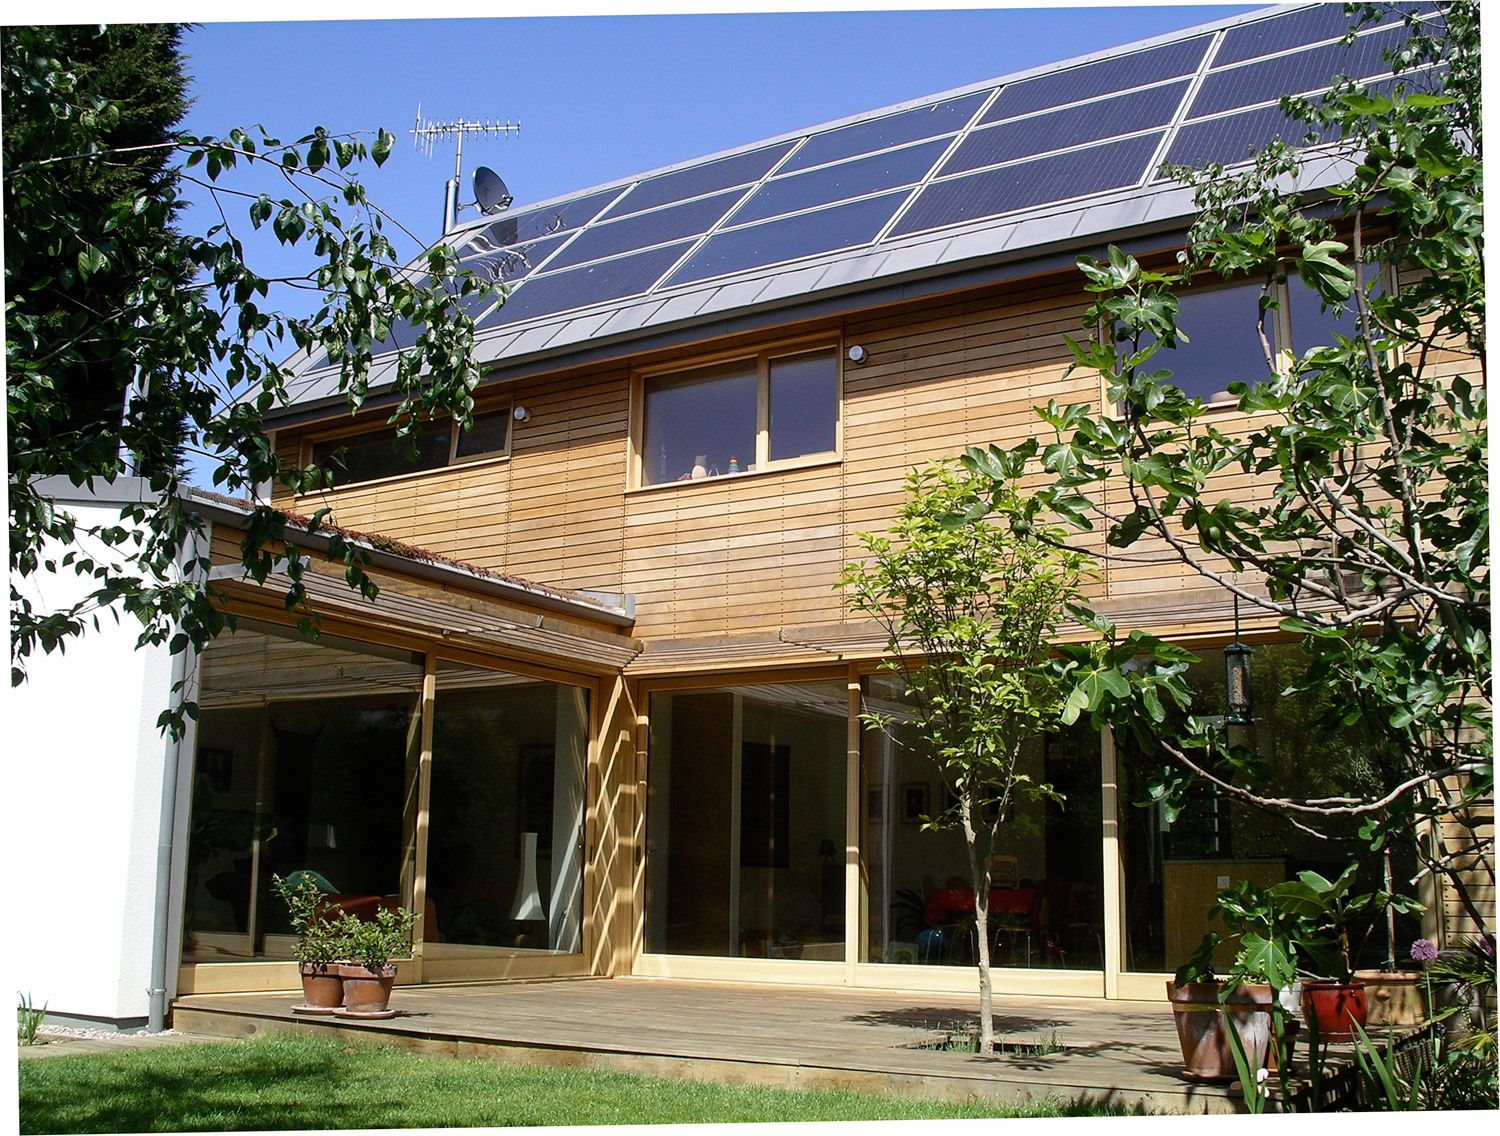 Zero-carbon home generates income by making more energy than it needs